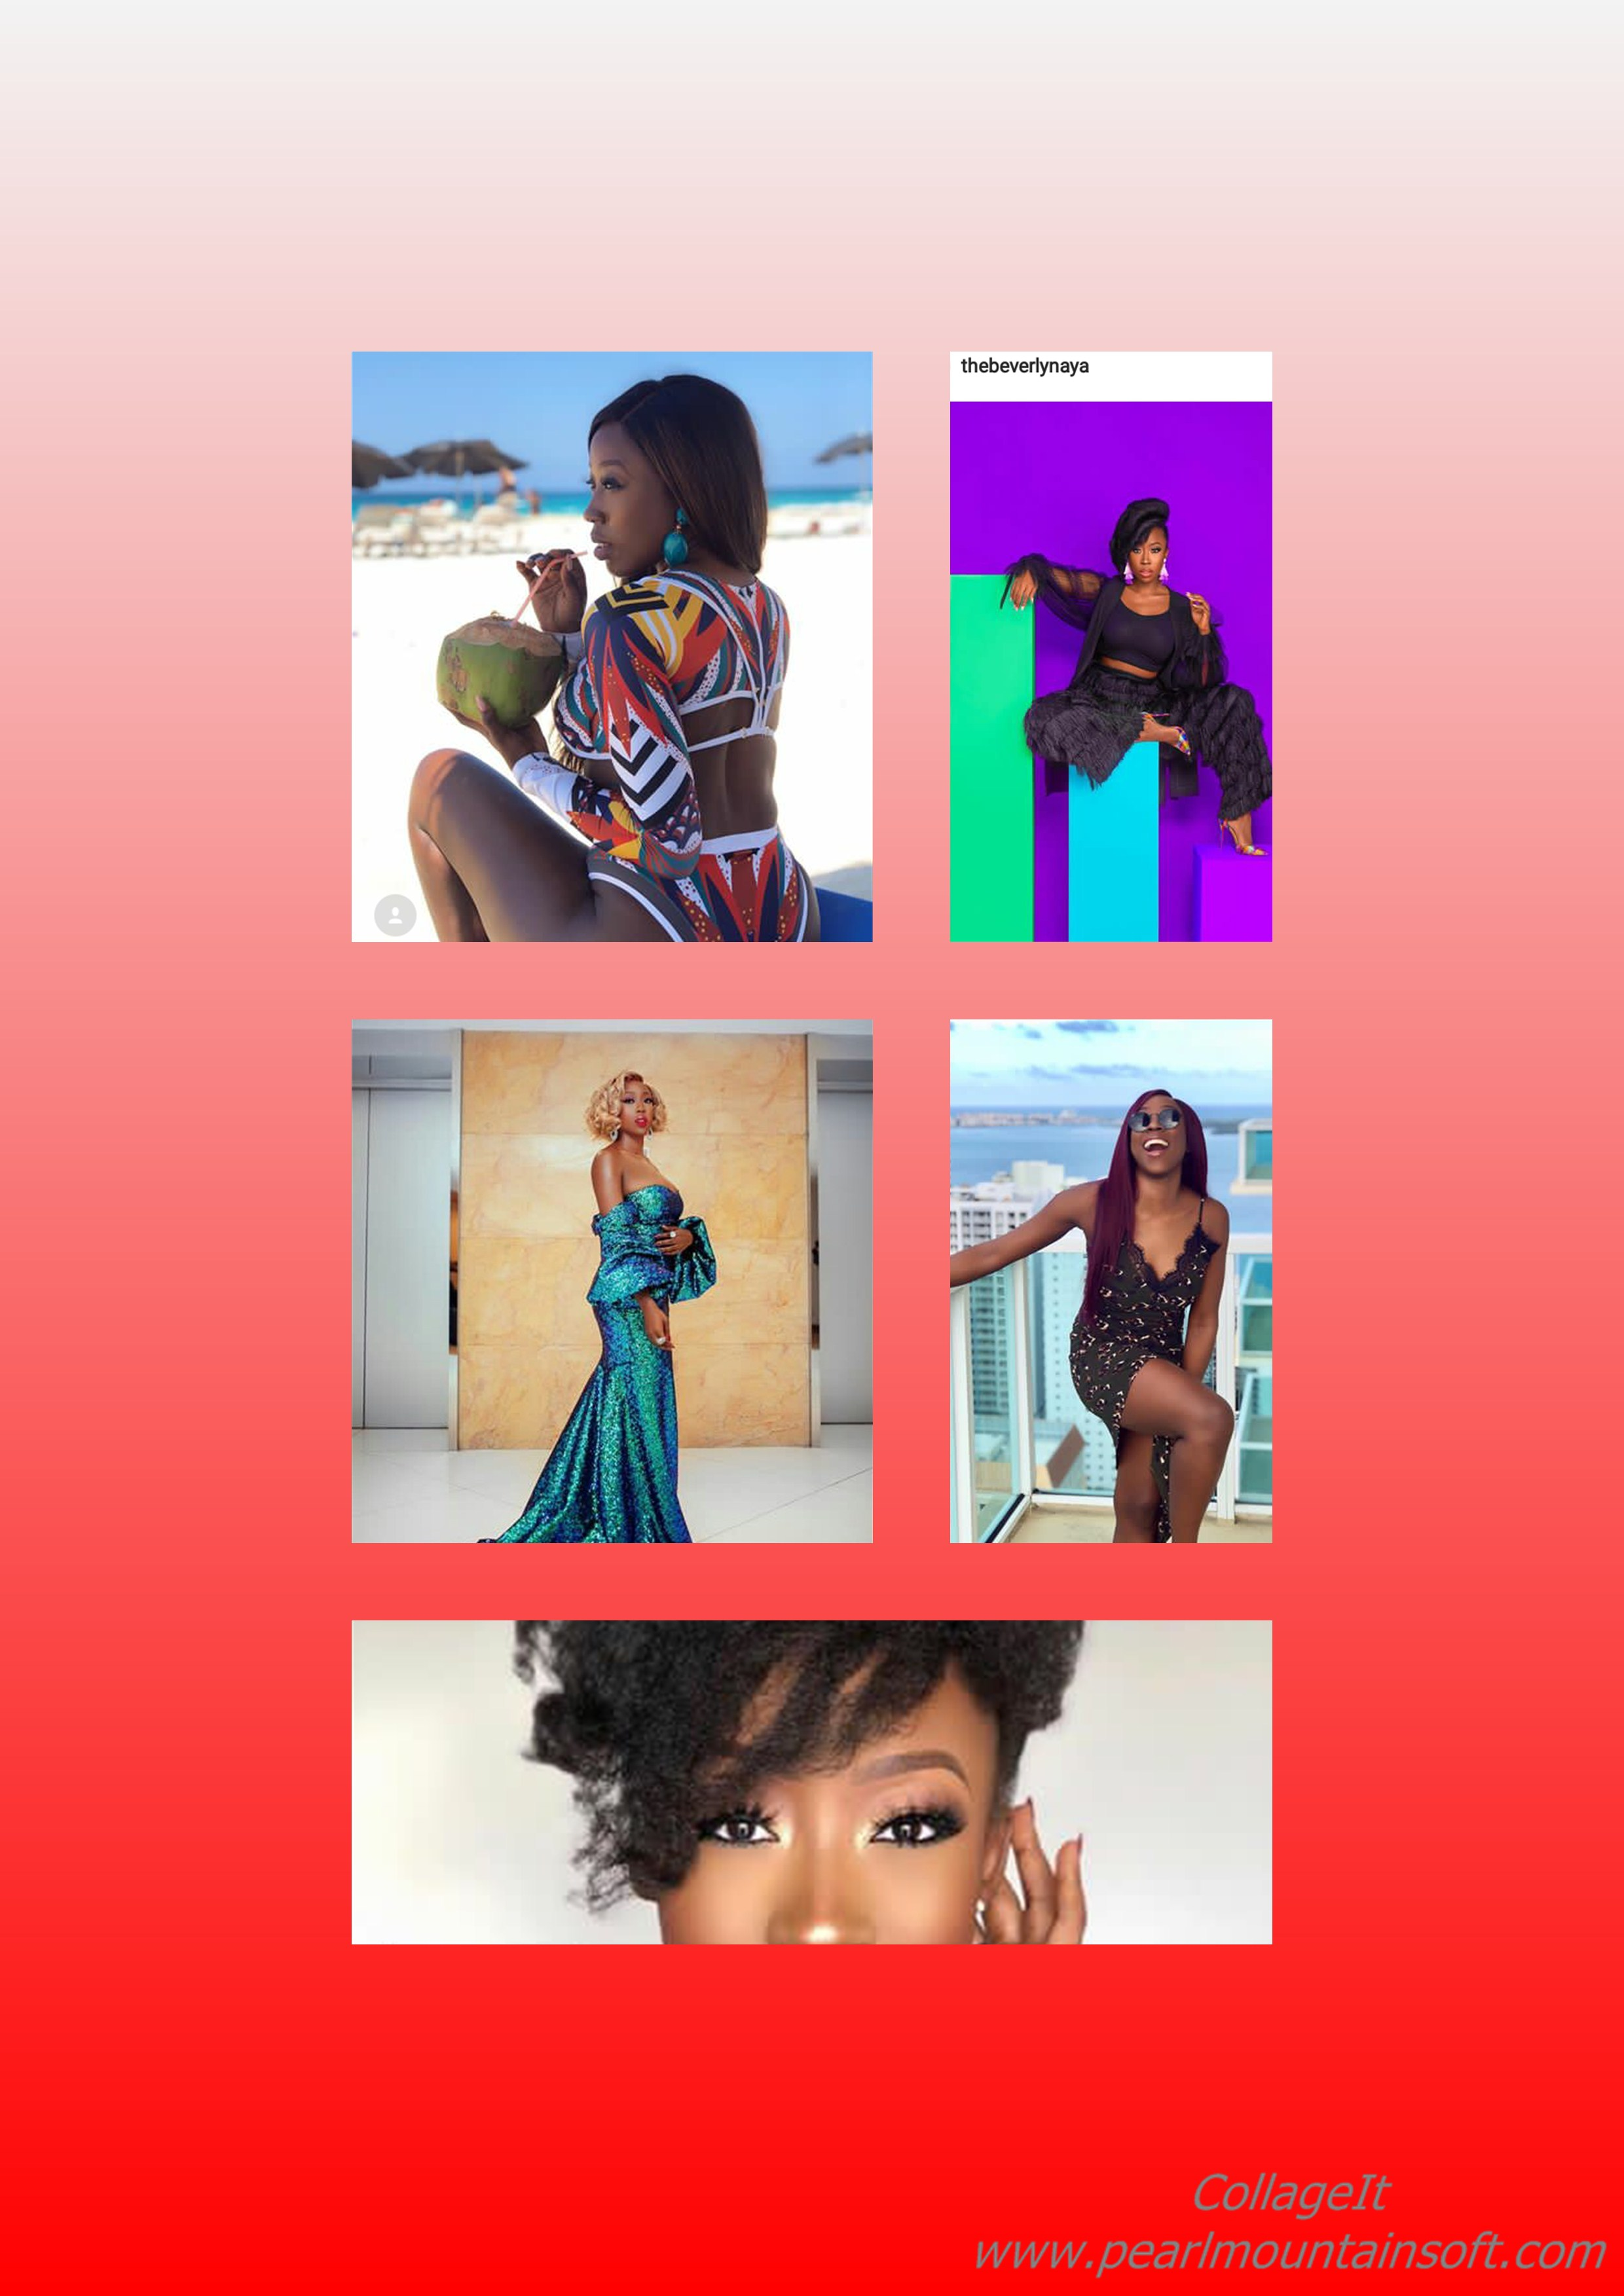 BEVERLY NAYA'S PICTURE CRAZE FOR THE WEEK: Blazing, Sexy, Weird, Modest or Something else?